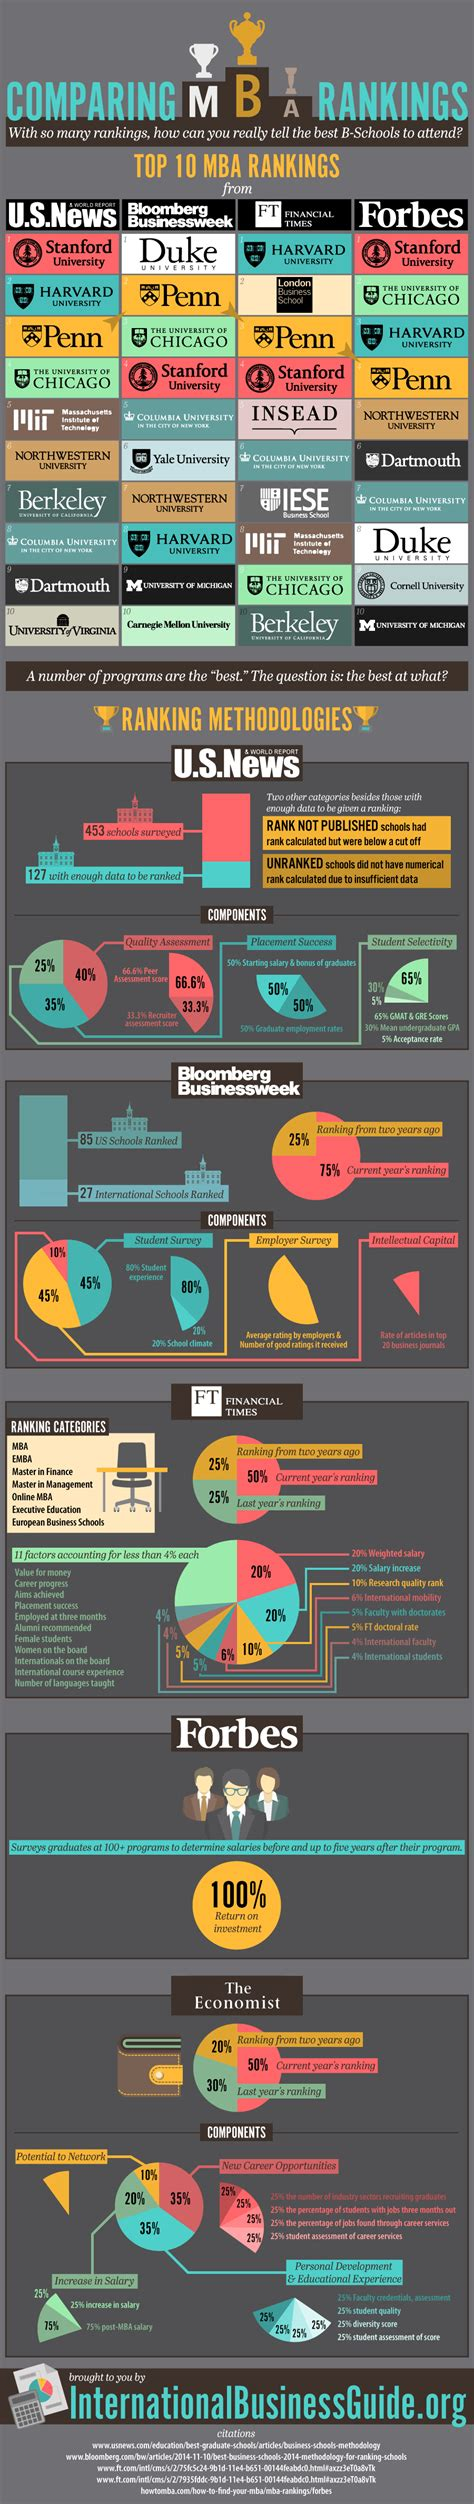 Best Us Mba Programs 2015 by Comparing Top 10 Mba Rankings Infographic The Gmat Club